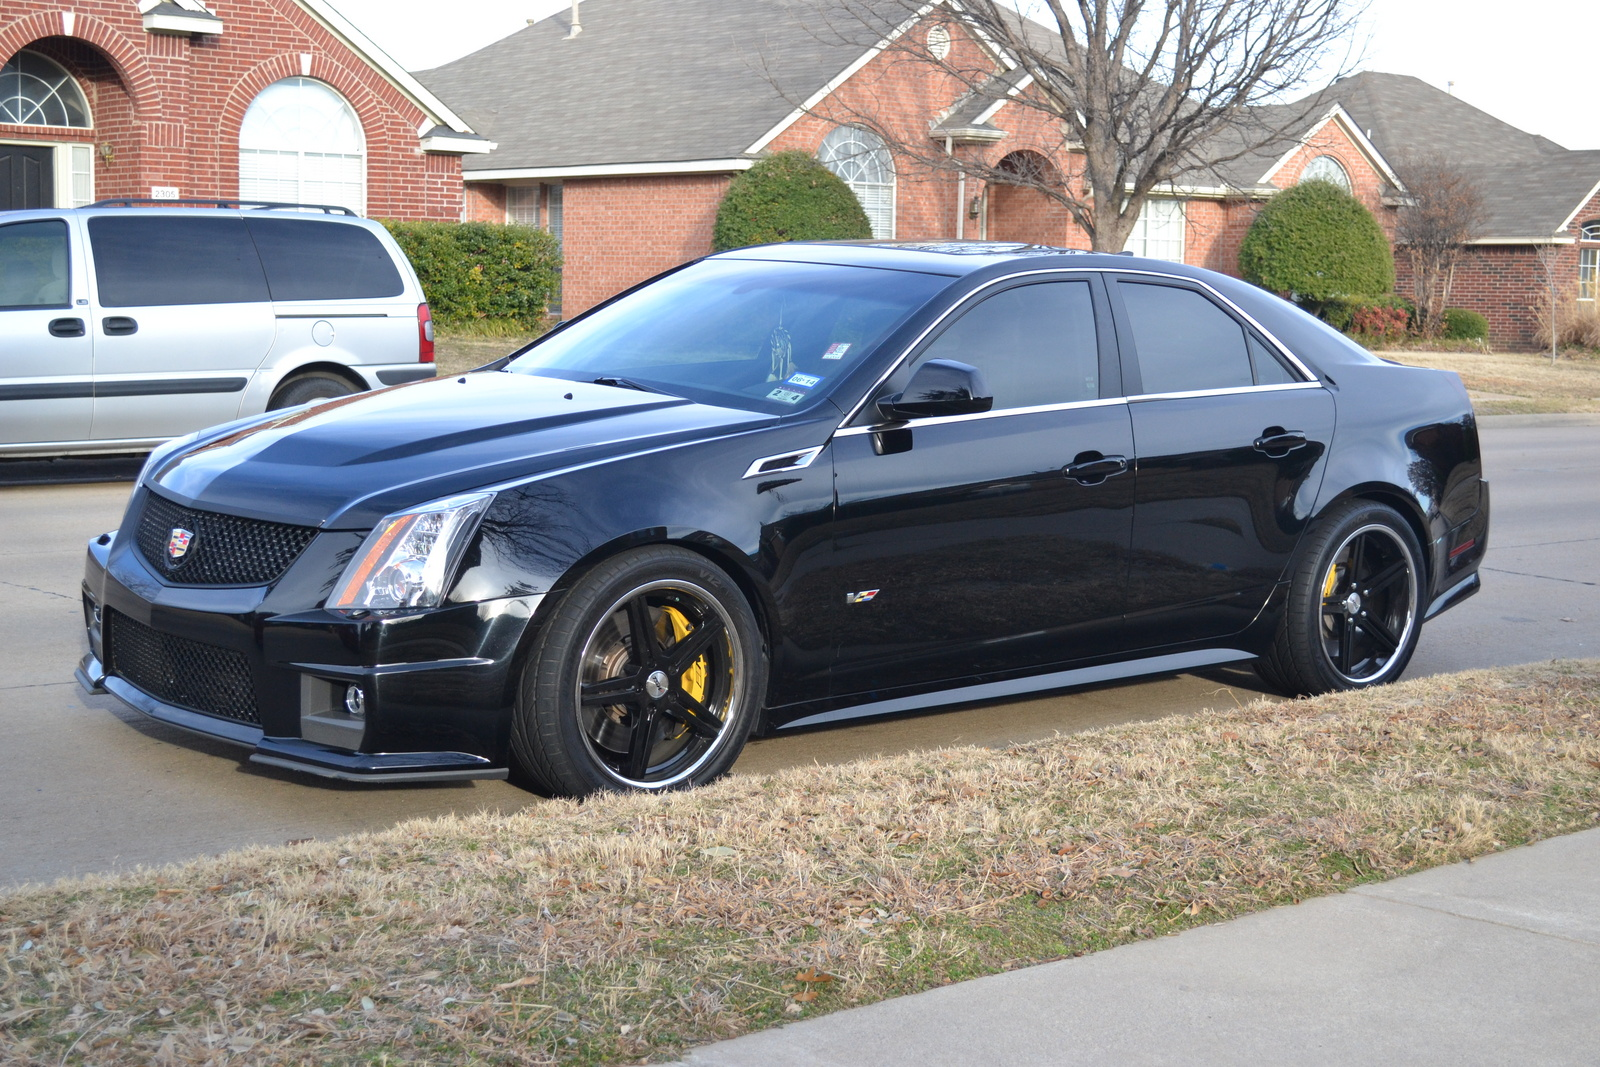 2012 cadillac cts v pictures cargurus. Black Bedroom Furniture Sets. Home Design Ideas